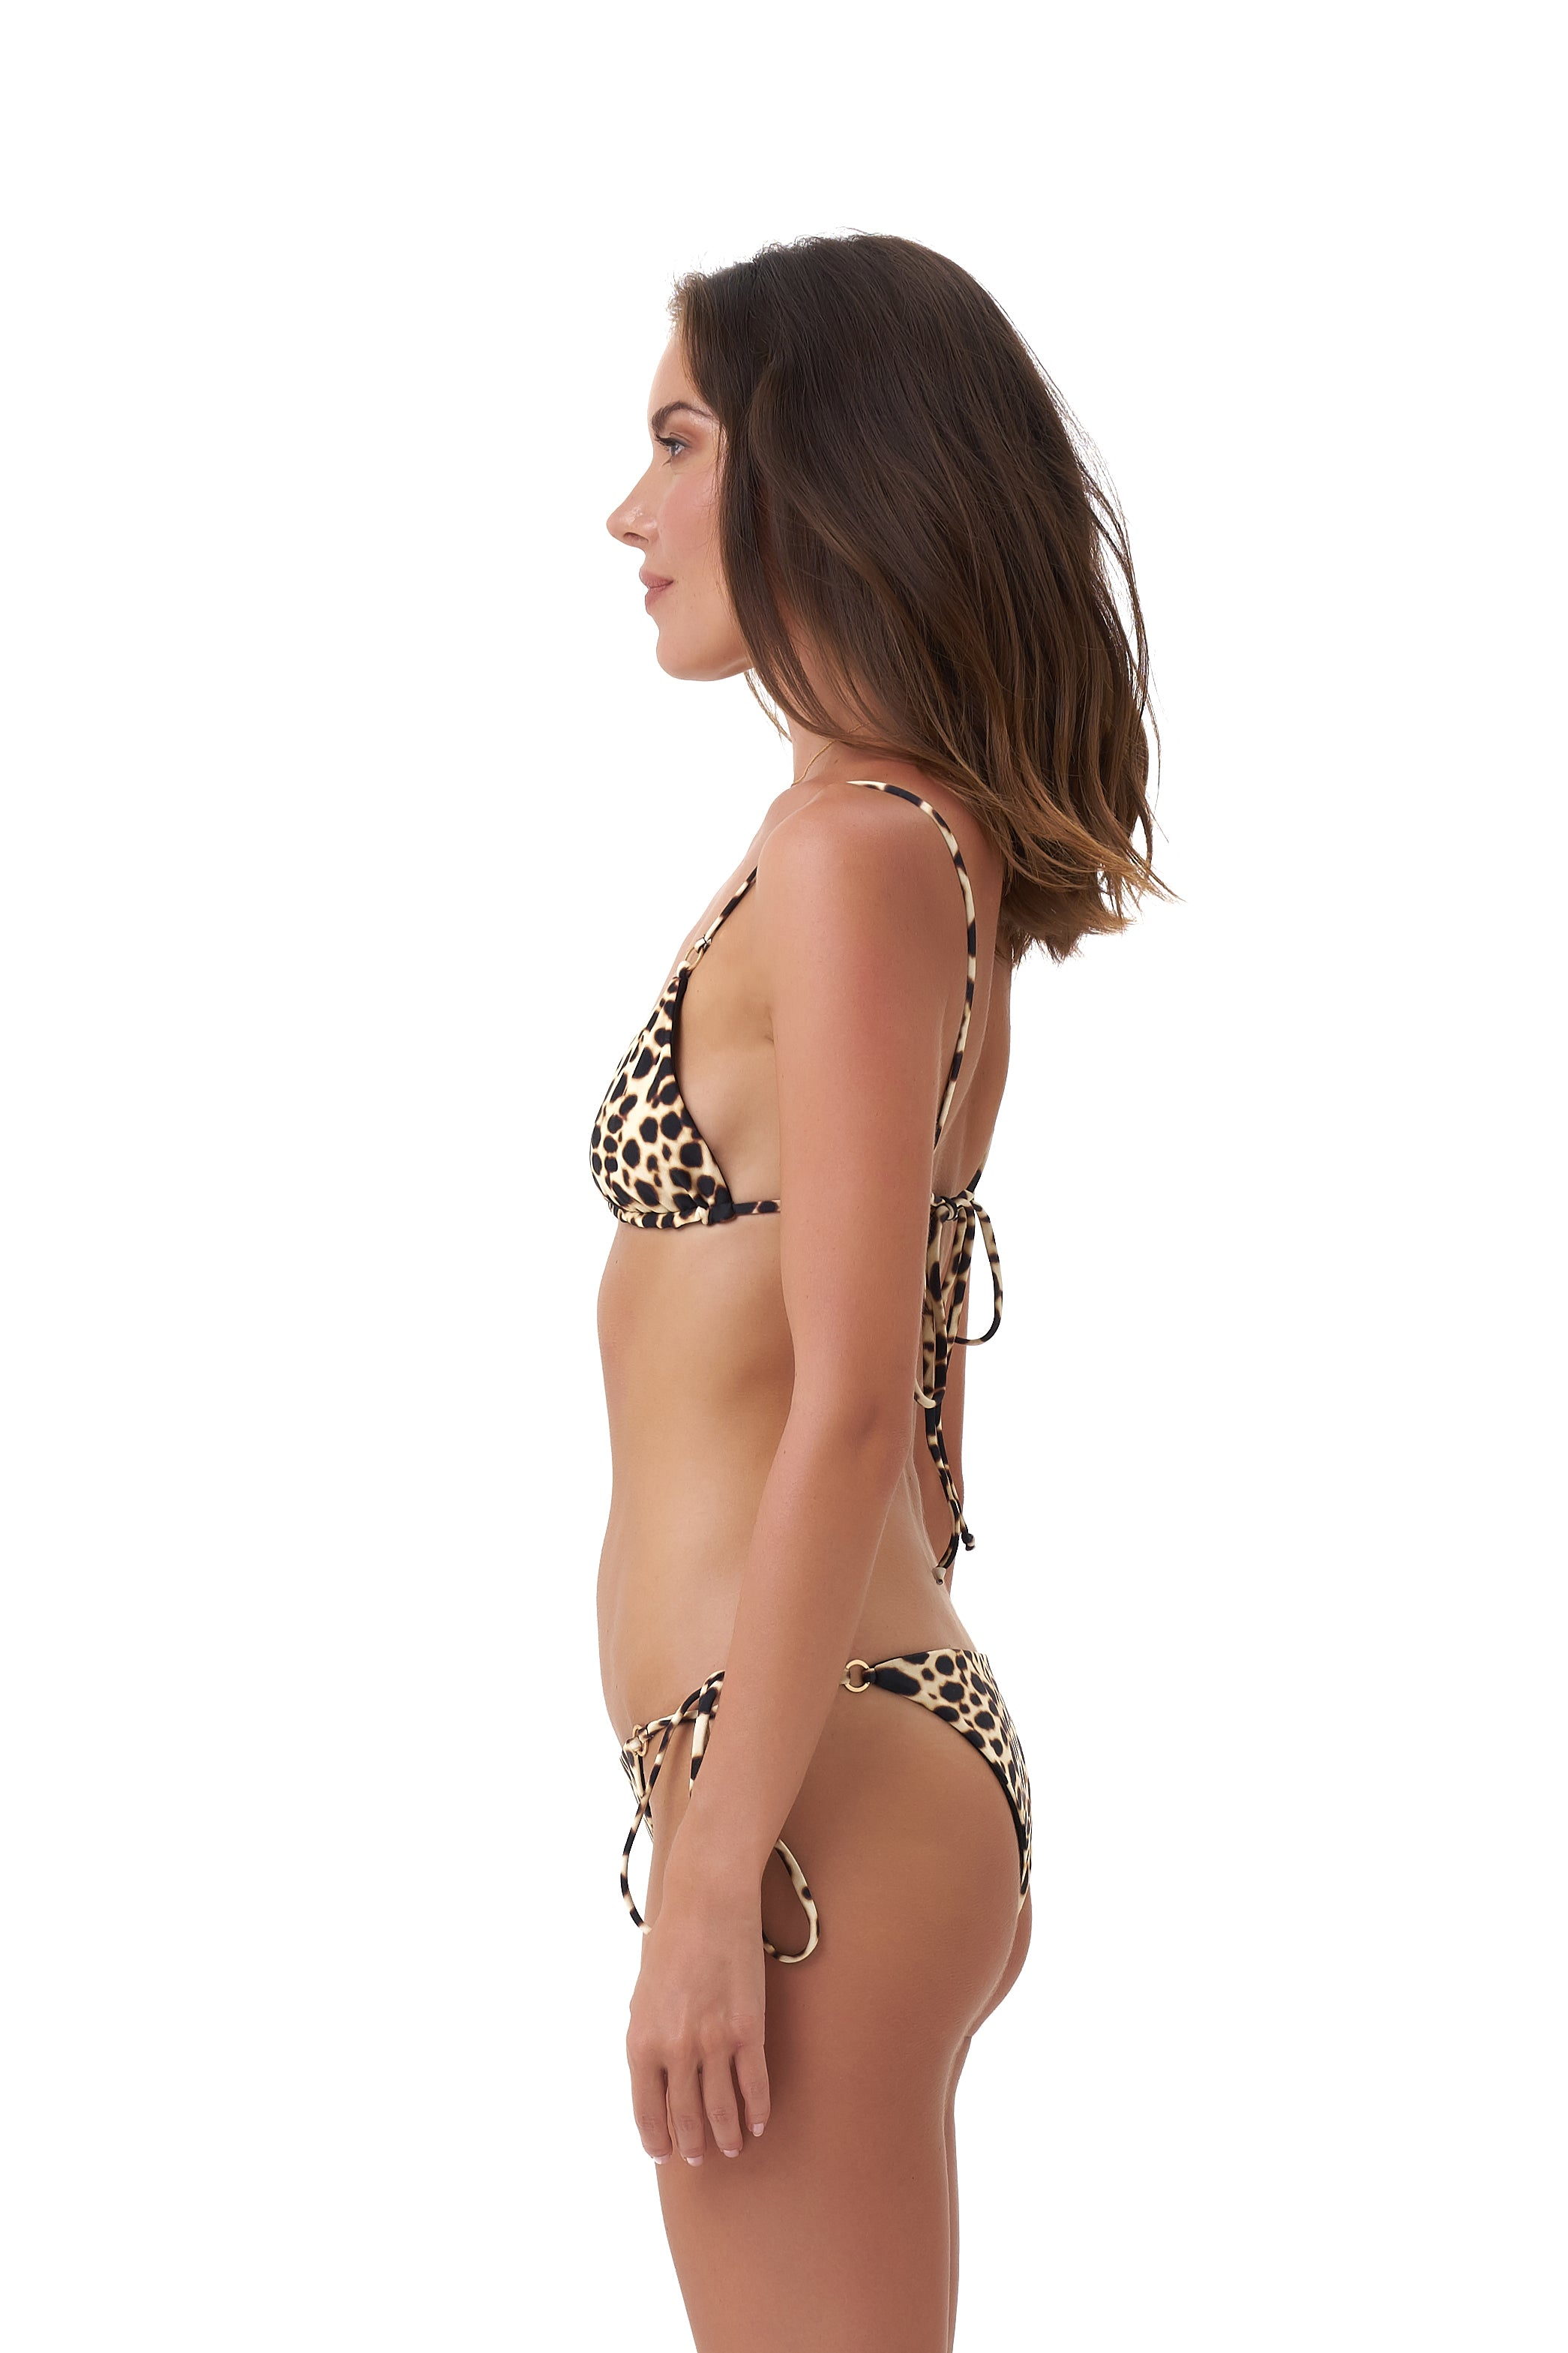 Storm Swimwear - Corfu - Tie Side with Ring Bikini Brief in Cheetah Print